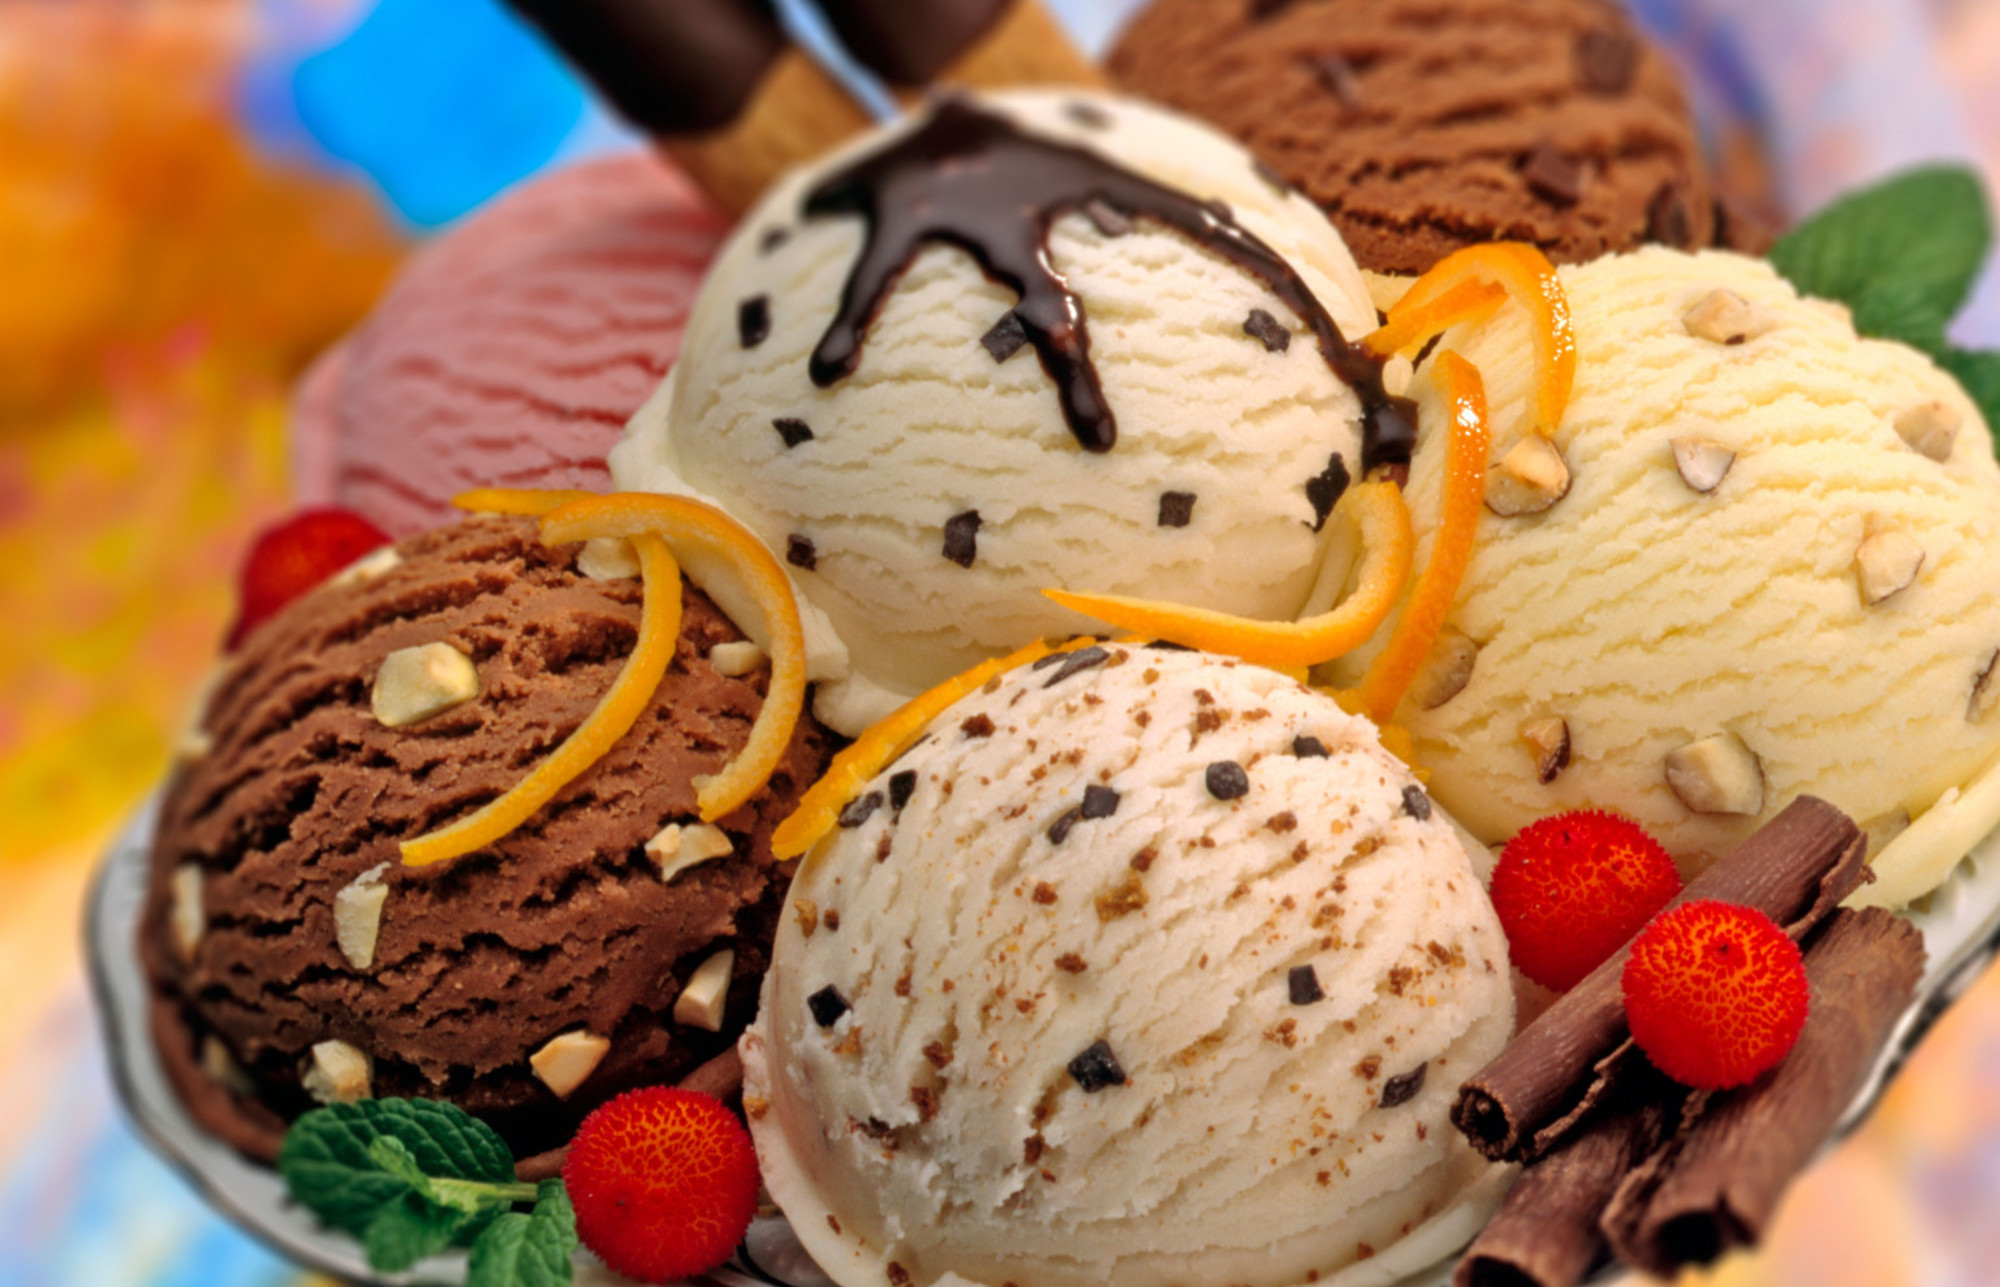 Ice Cream Wallpaper Appstore for